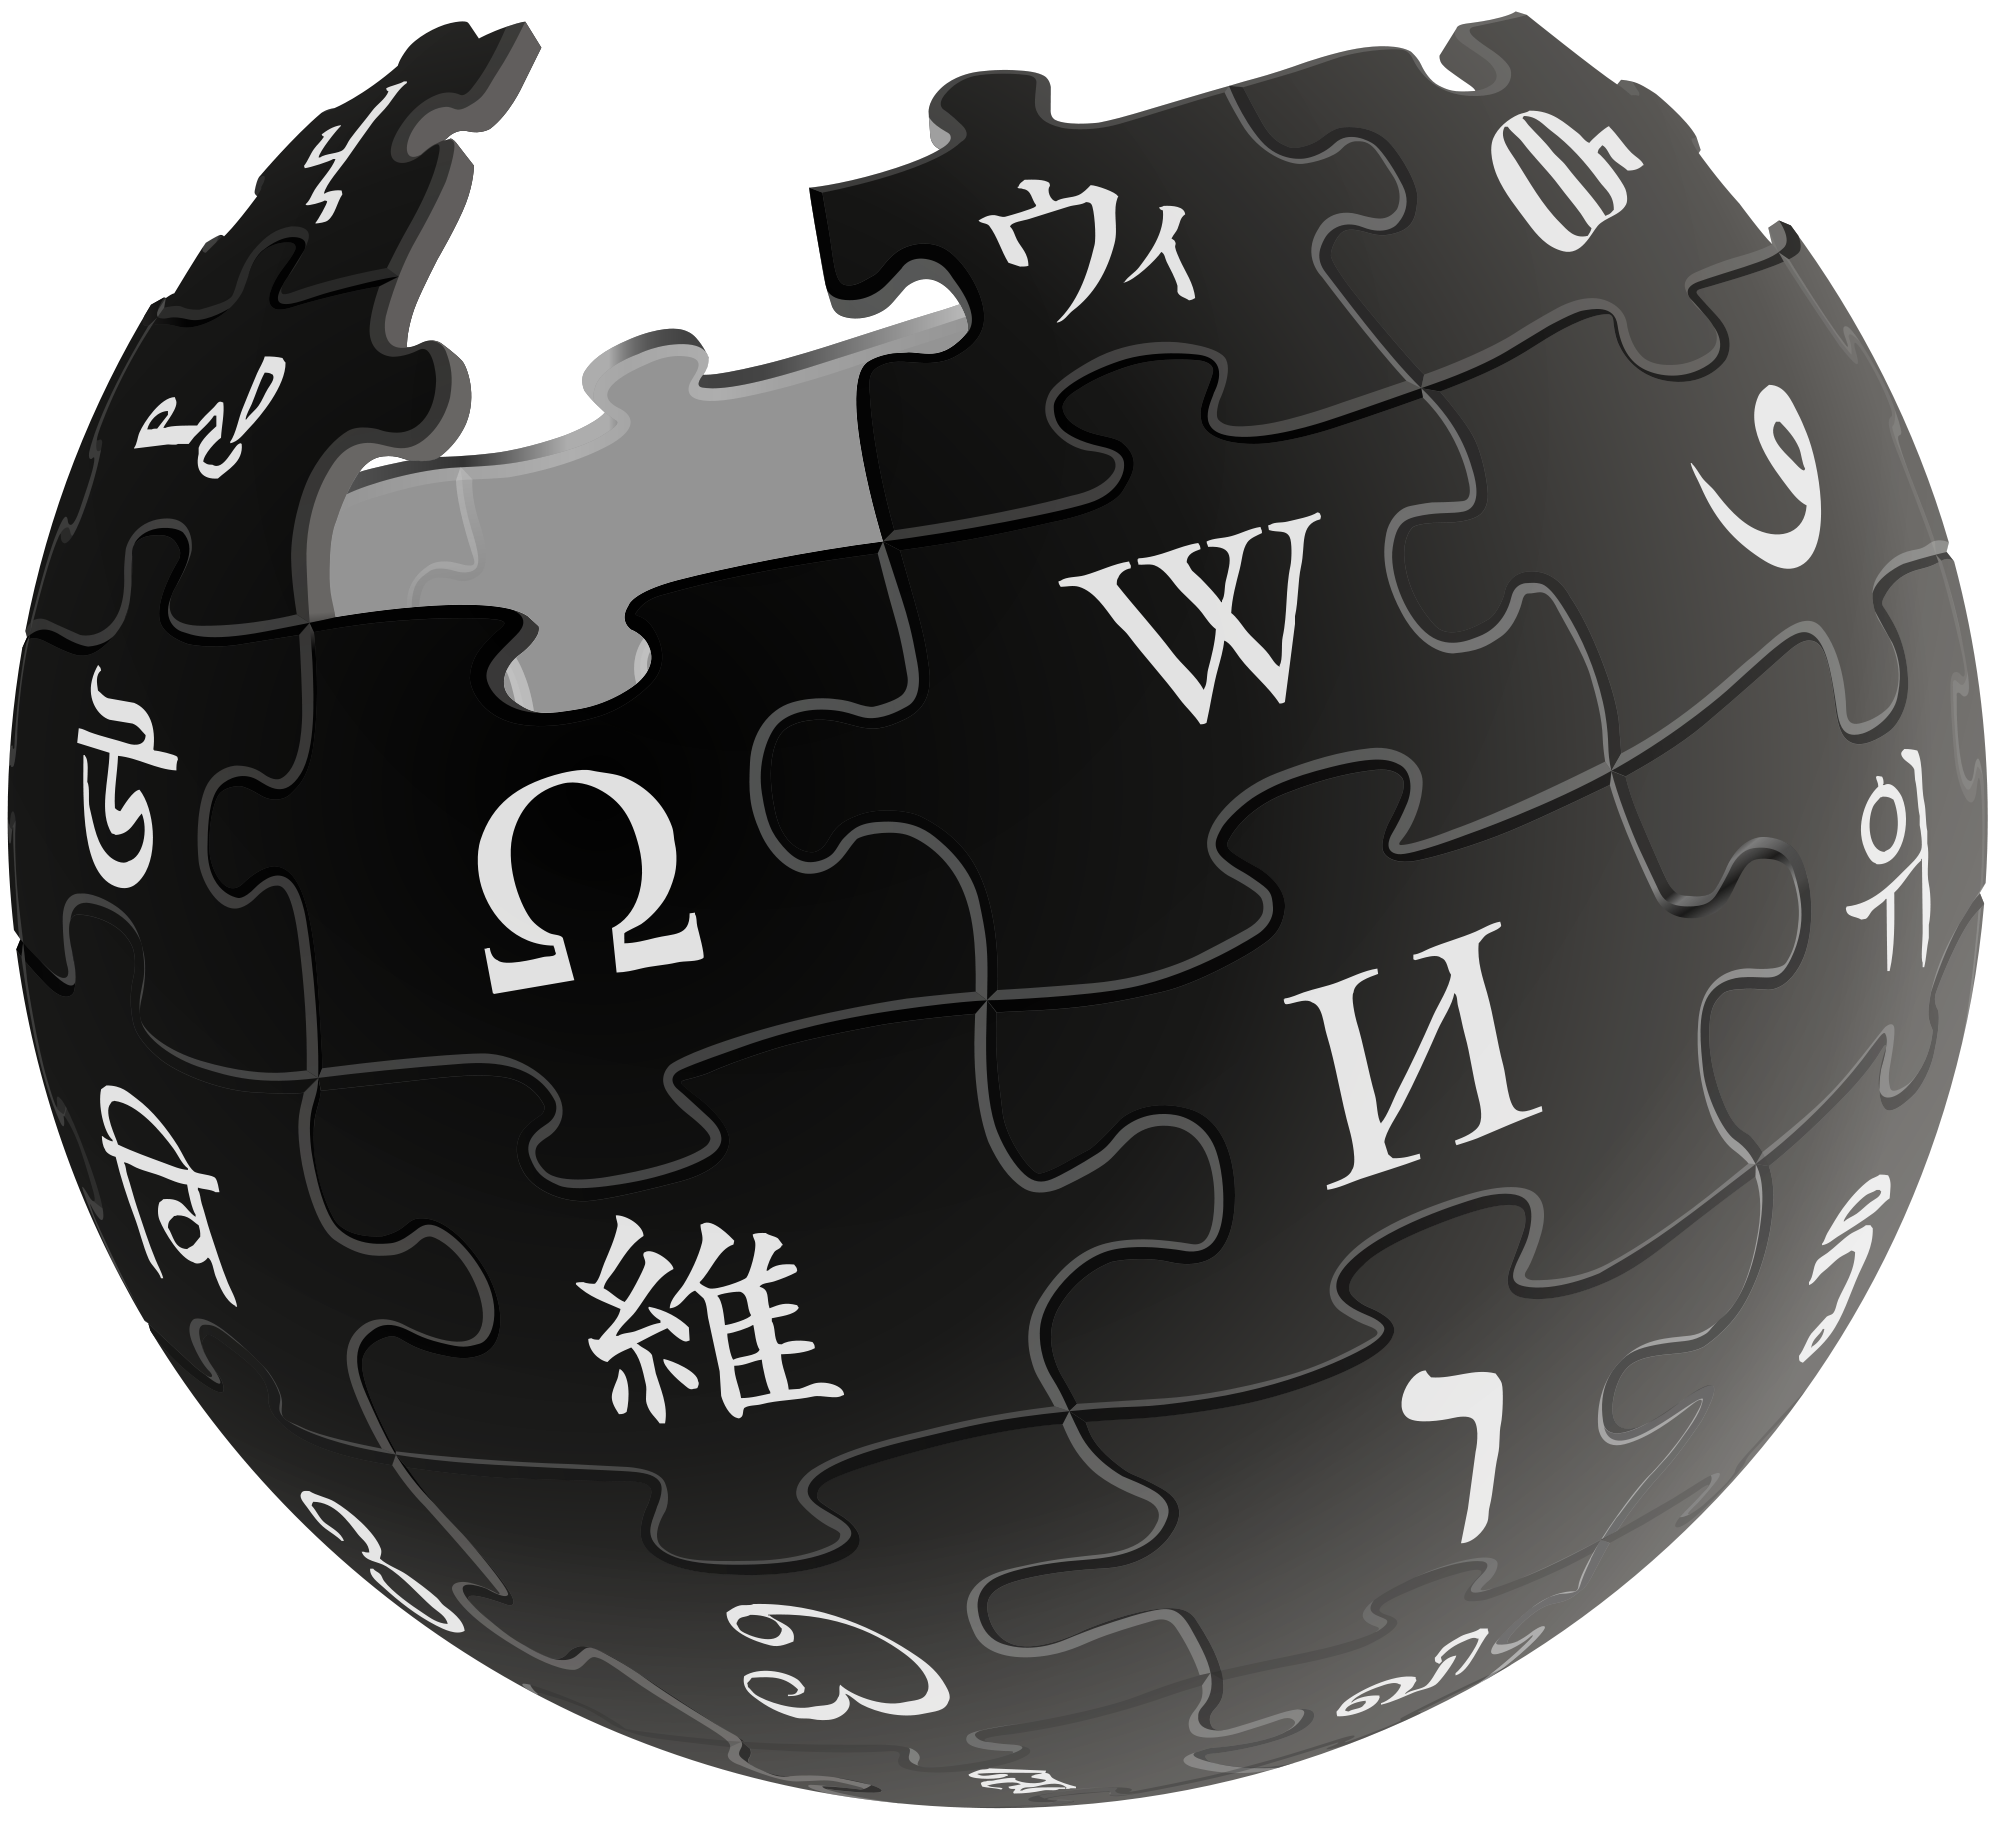 File wiki wikimedia commons for The free wikipedia